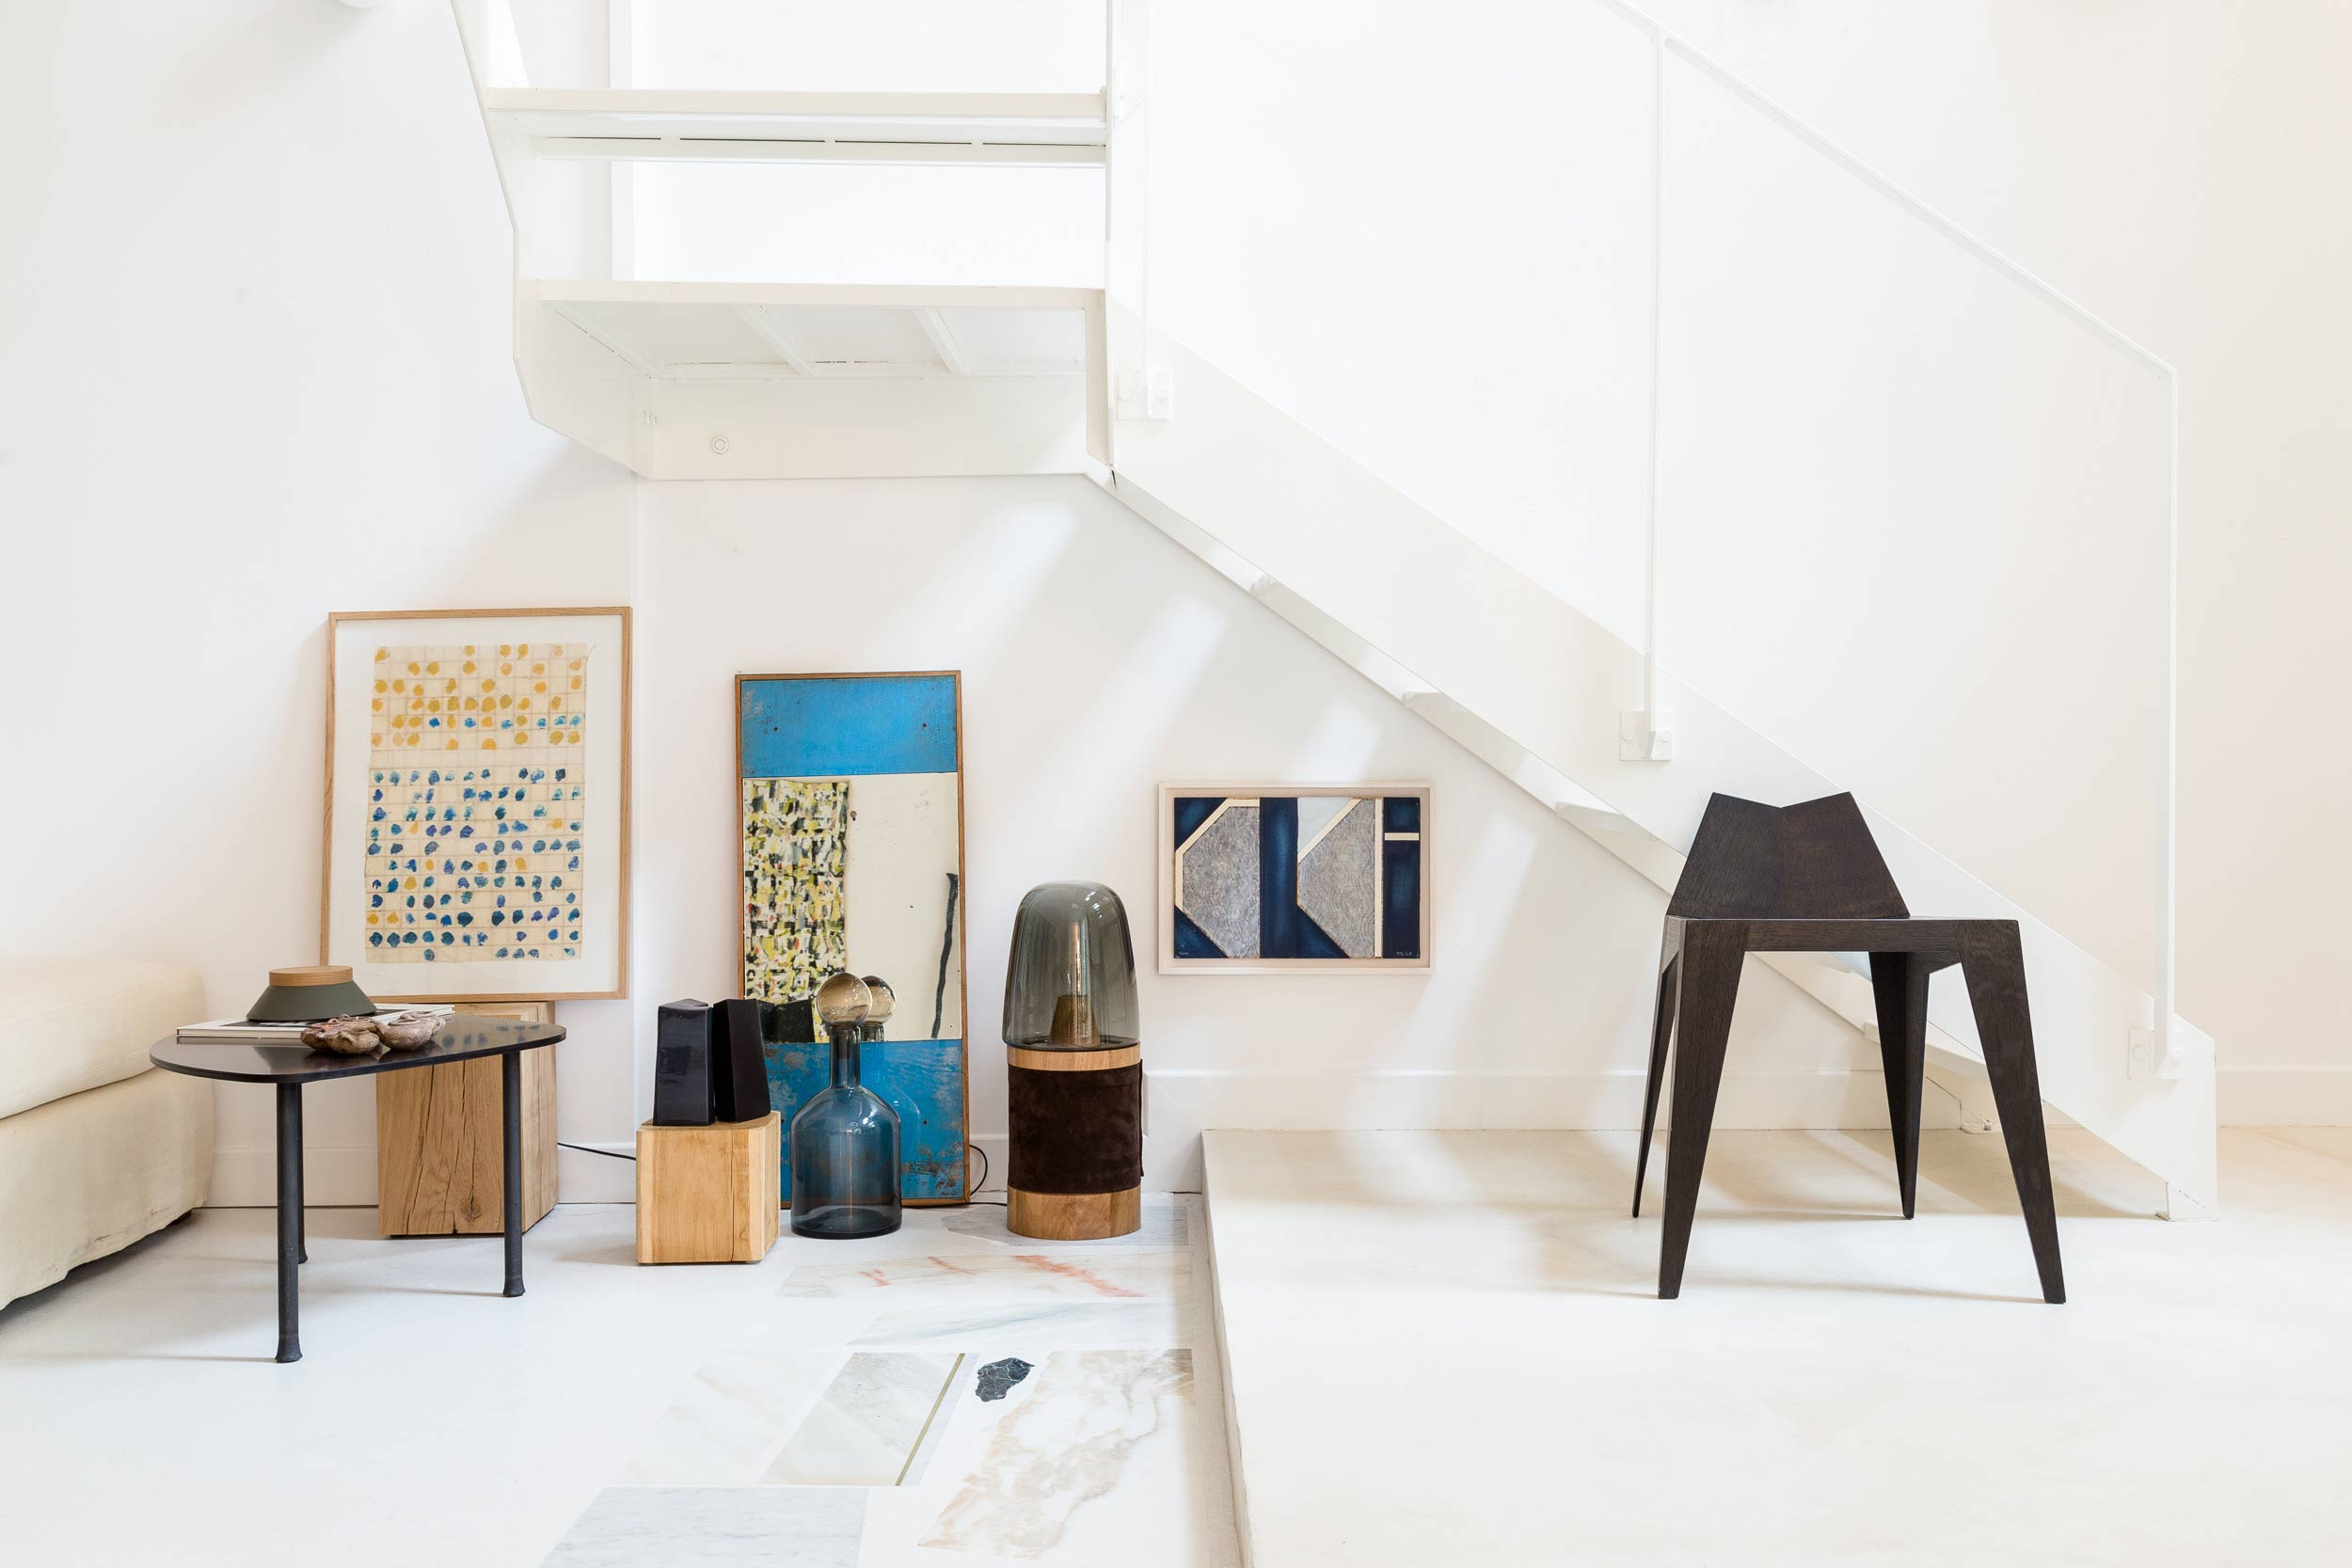 How to choose a painting for the interior?